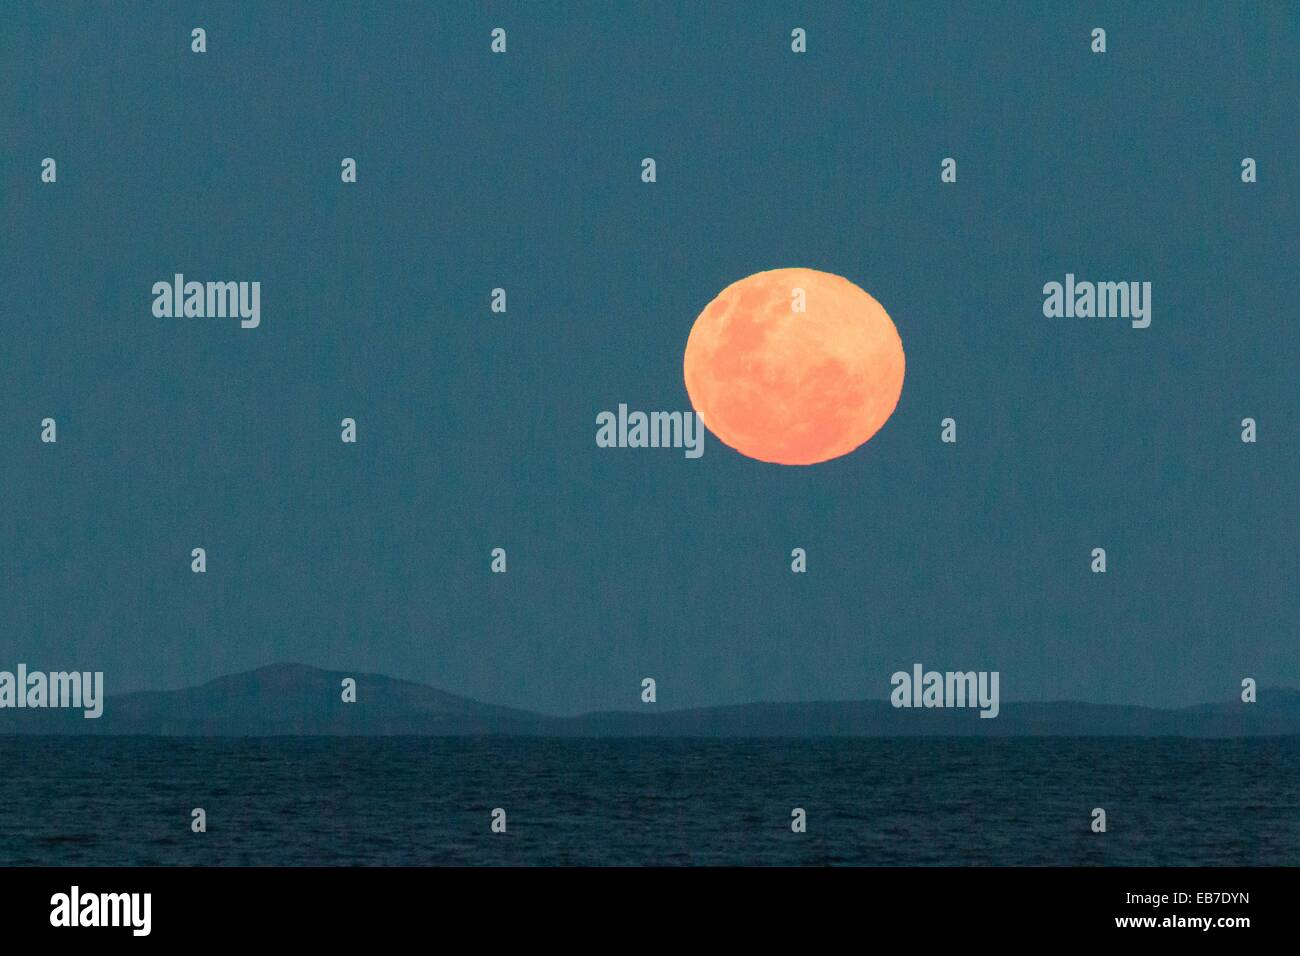 Moon Rise Over The Sea - Stock Image